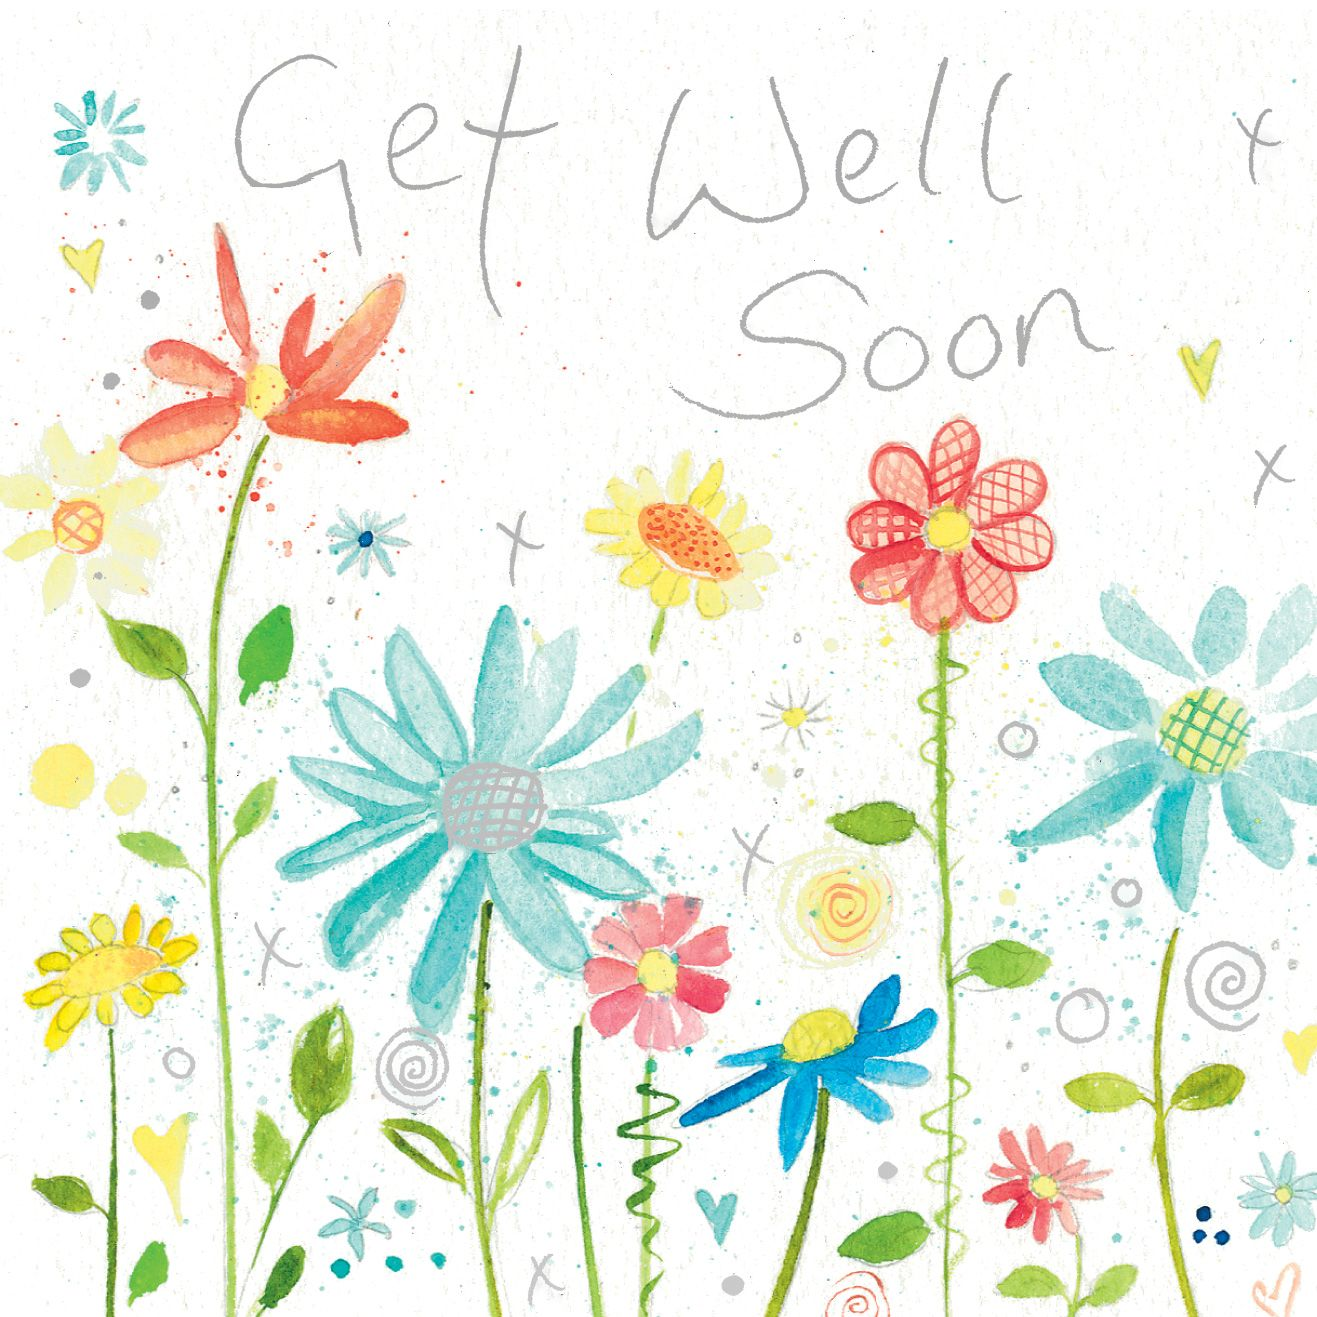 Get Well Soon W121 Floral Greetings Card By Lyn Thompson Features